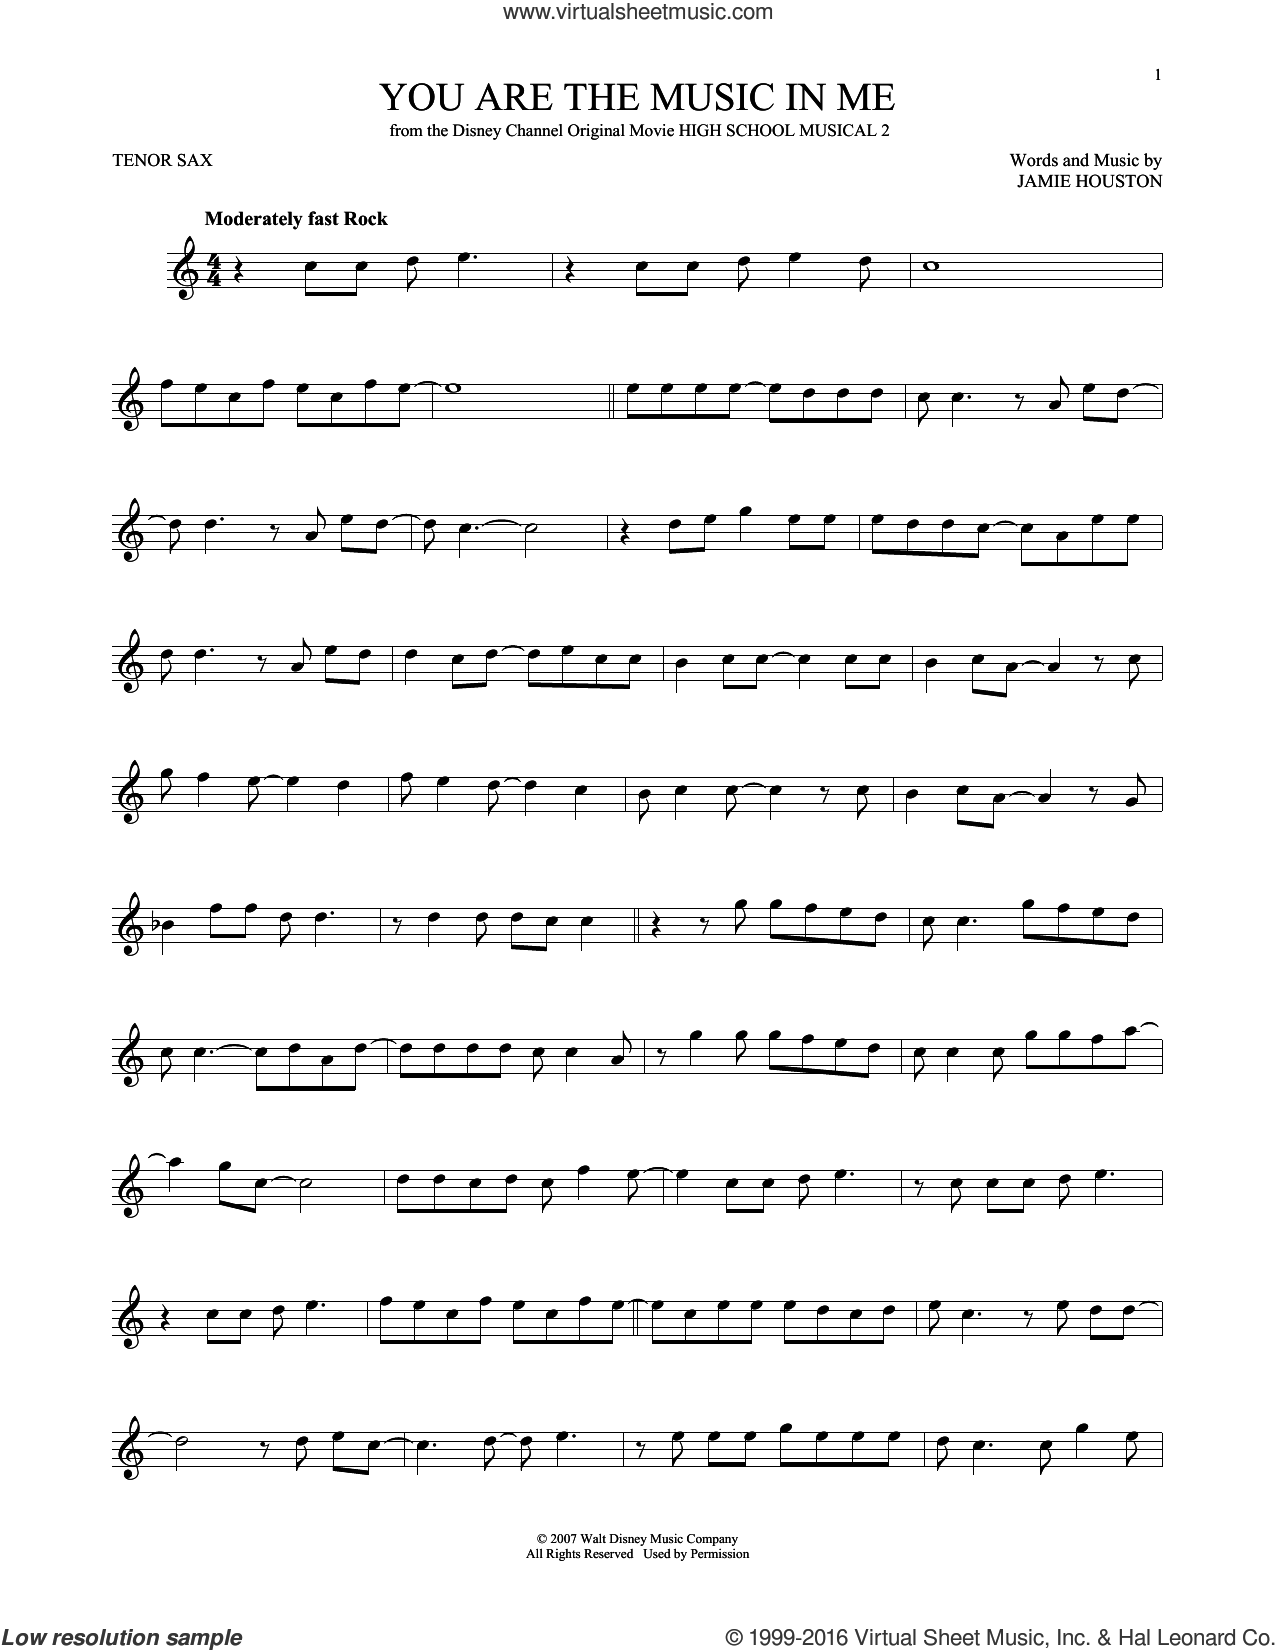 You Are The Music In Me sheet music for tenor saxophone solo by Jamie Houston